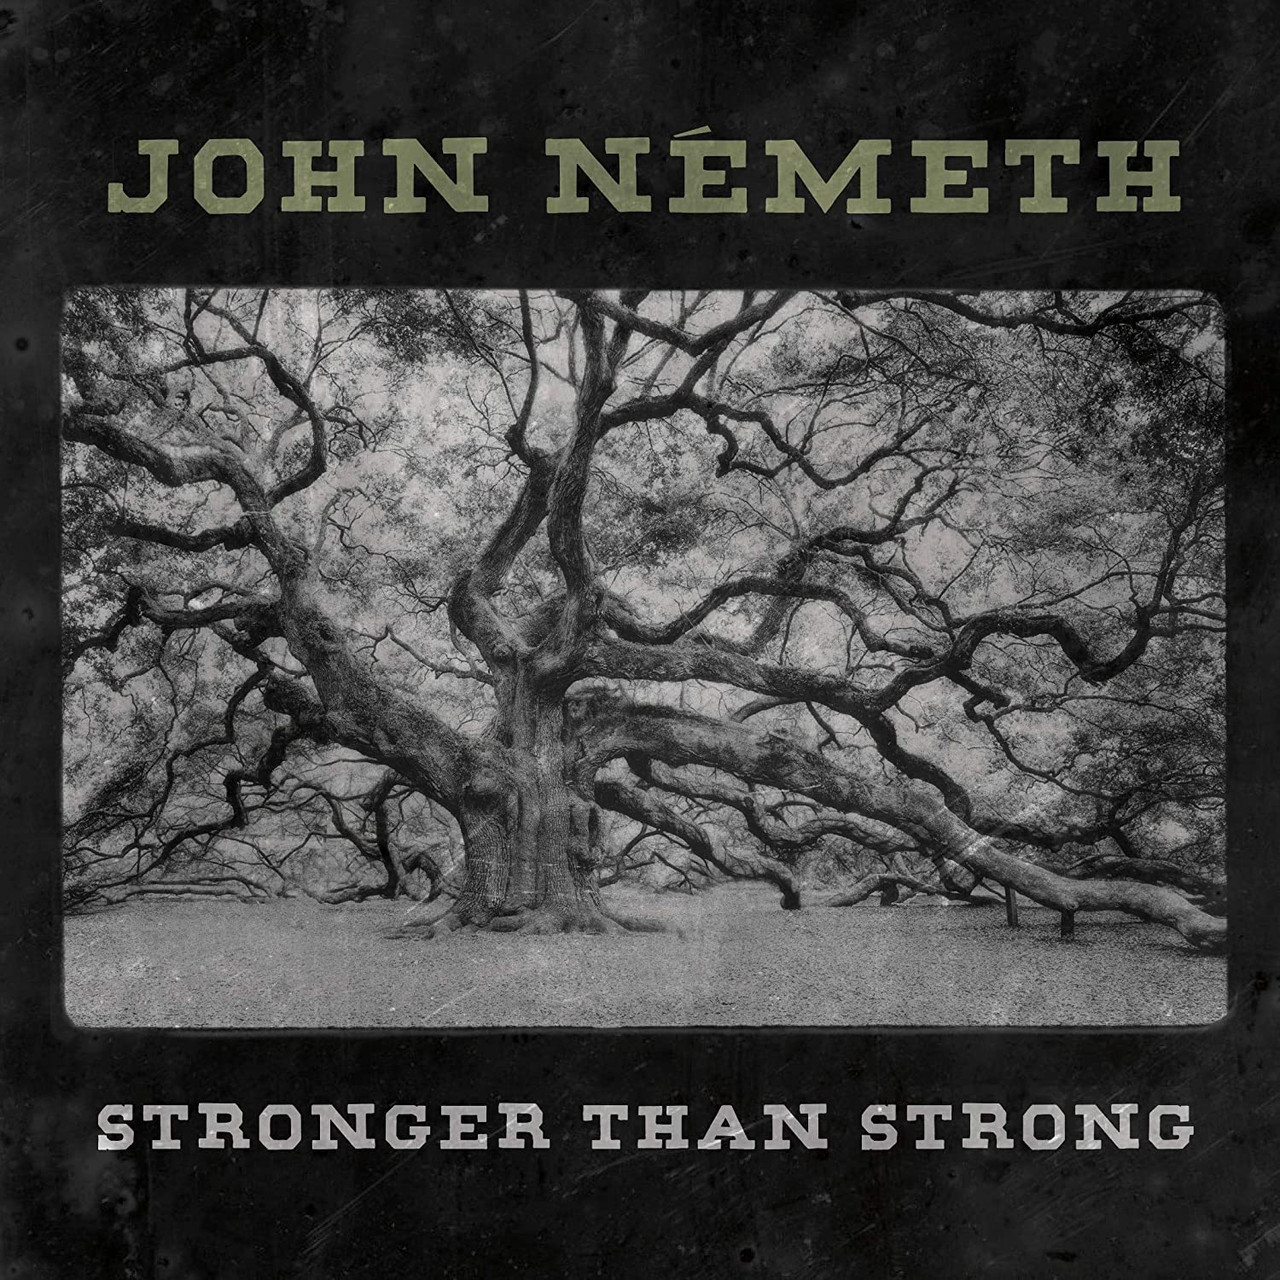 JOHN NEMETH - STRONGER THAN STRONG - RELEASE DATE 10/16/20